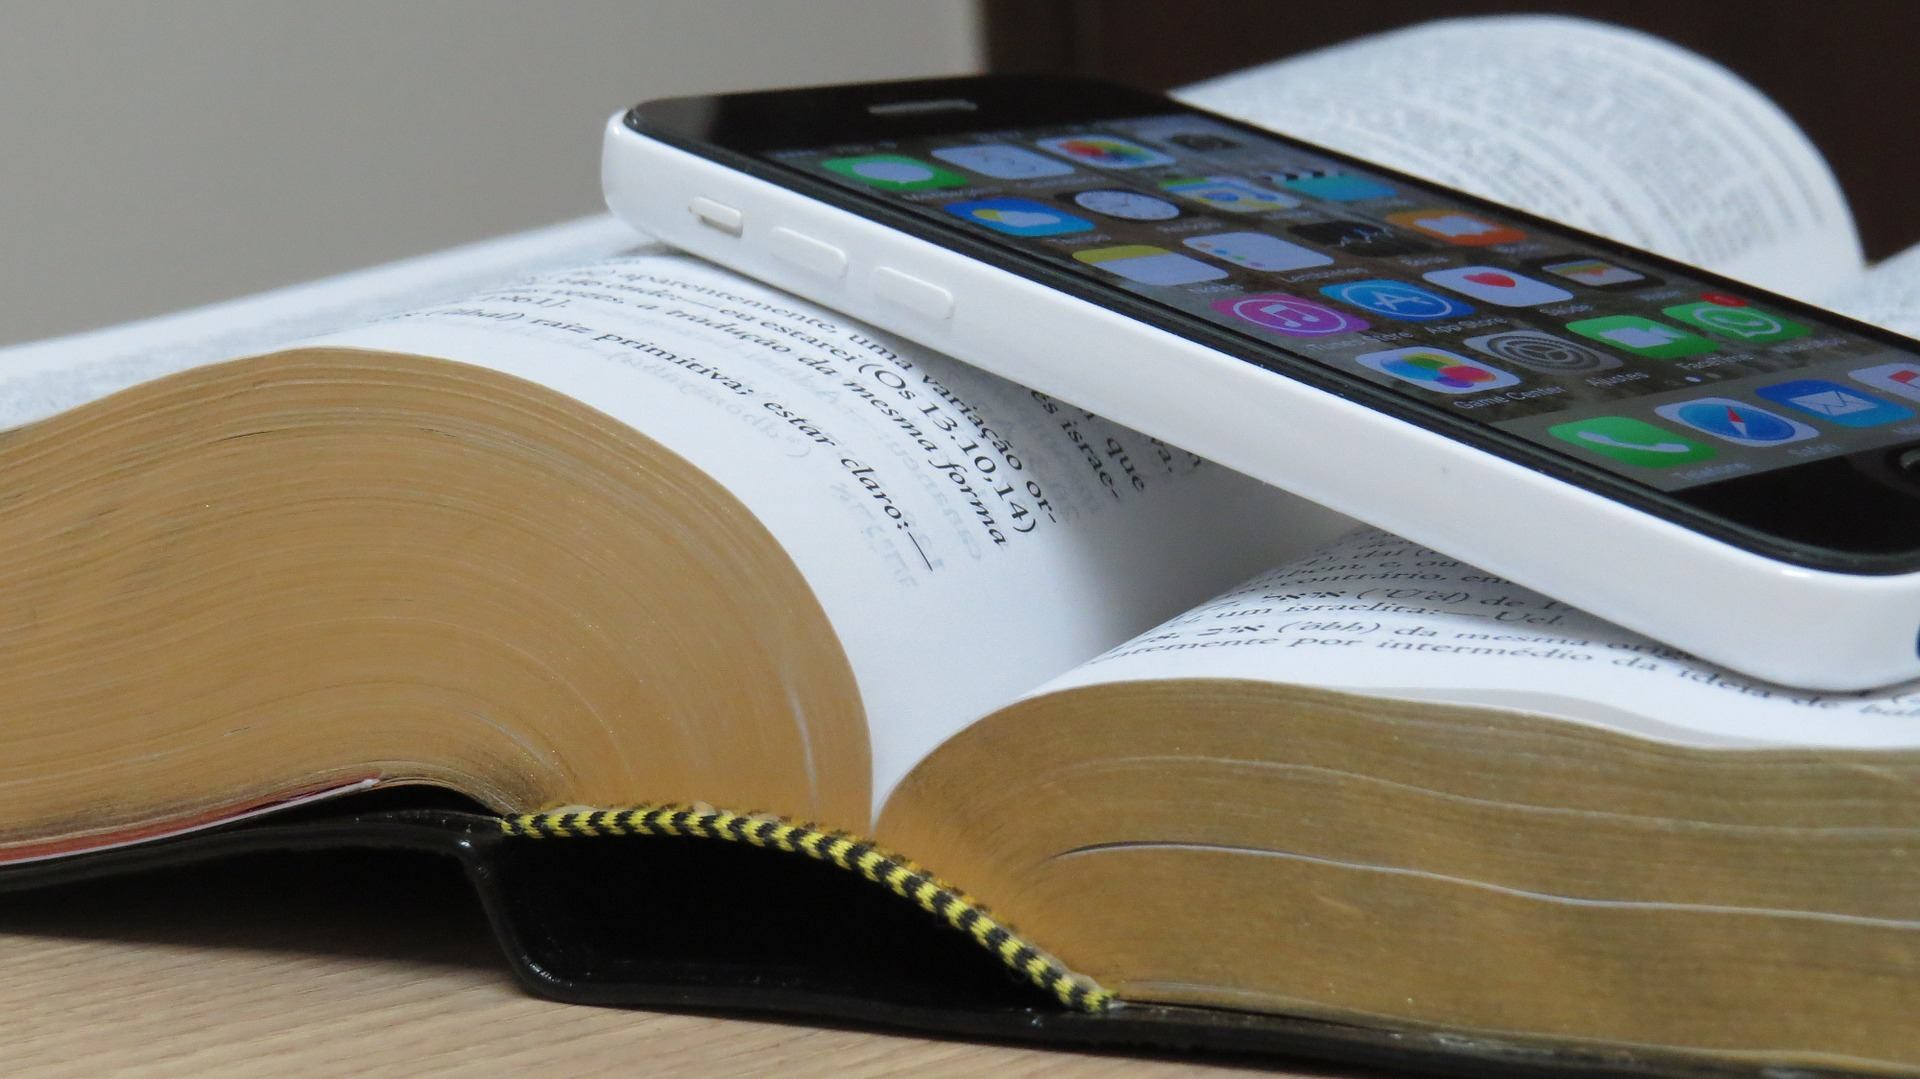 The June bible reading plans